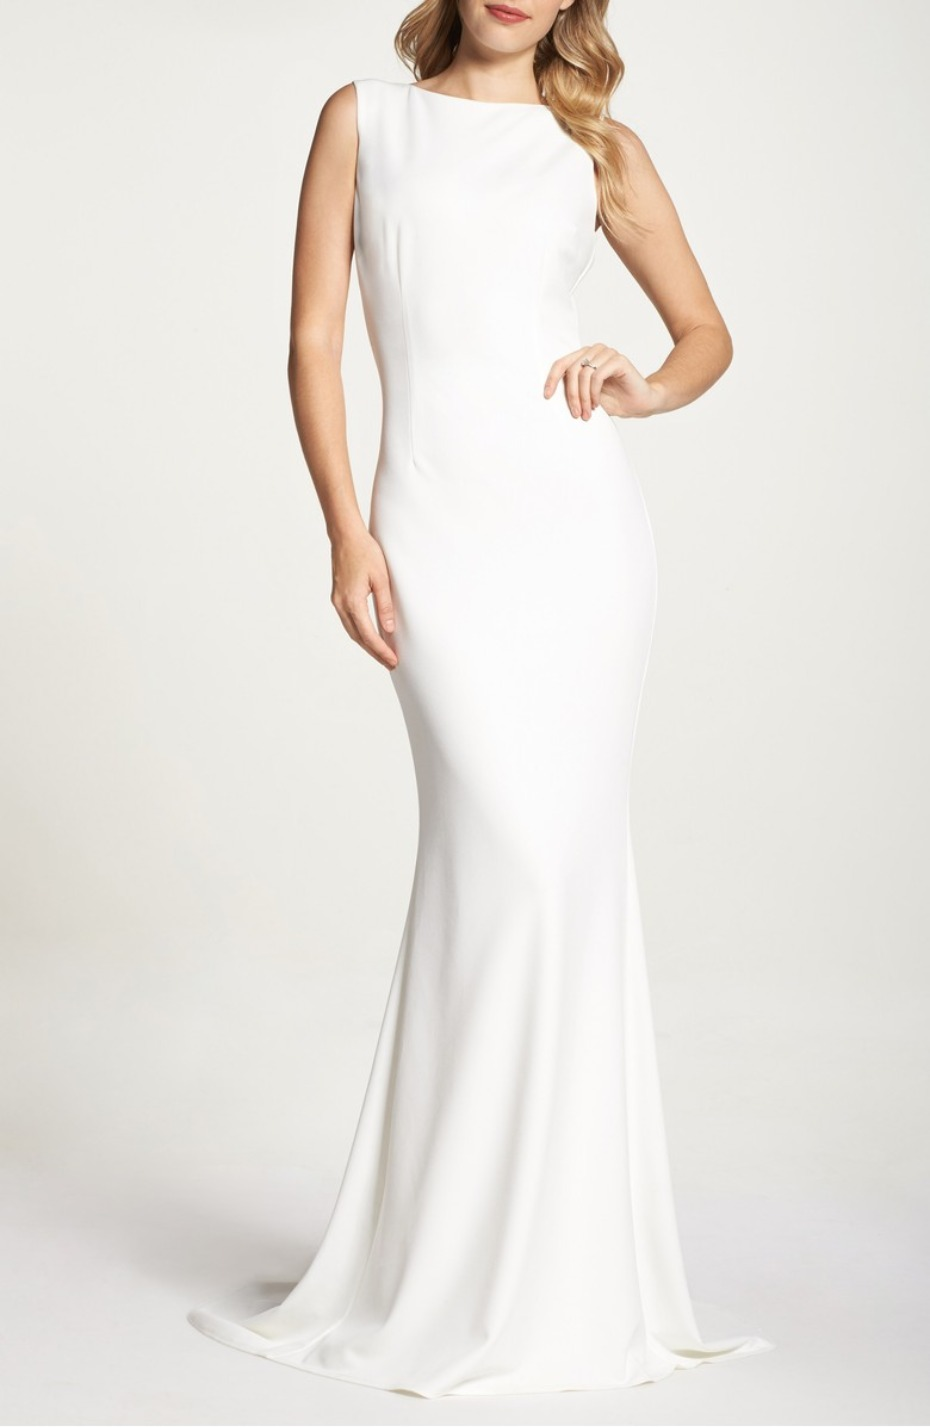 White Crepe Gown Katie May for Nordstrom